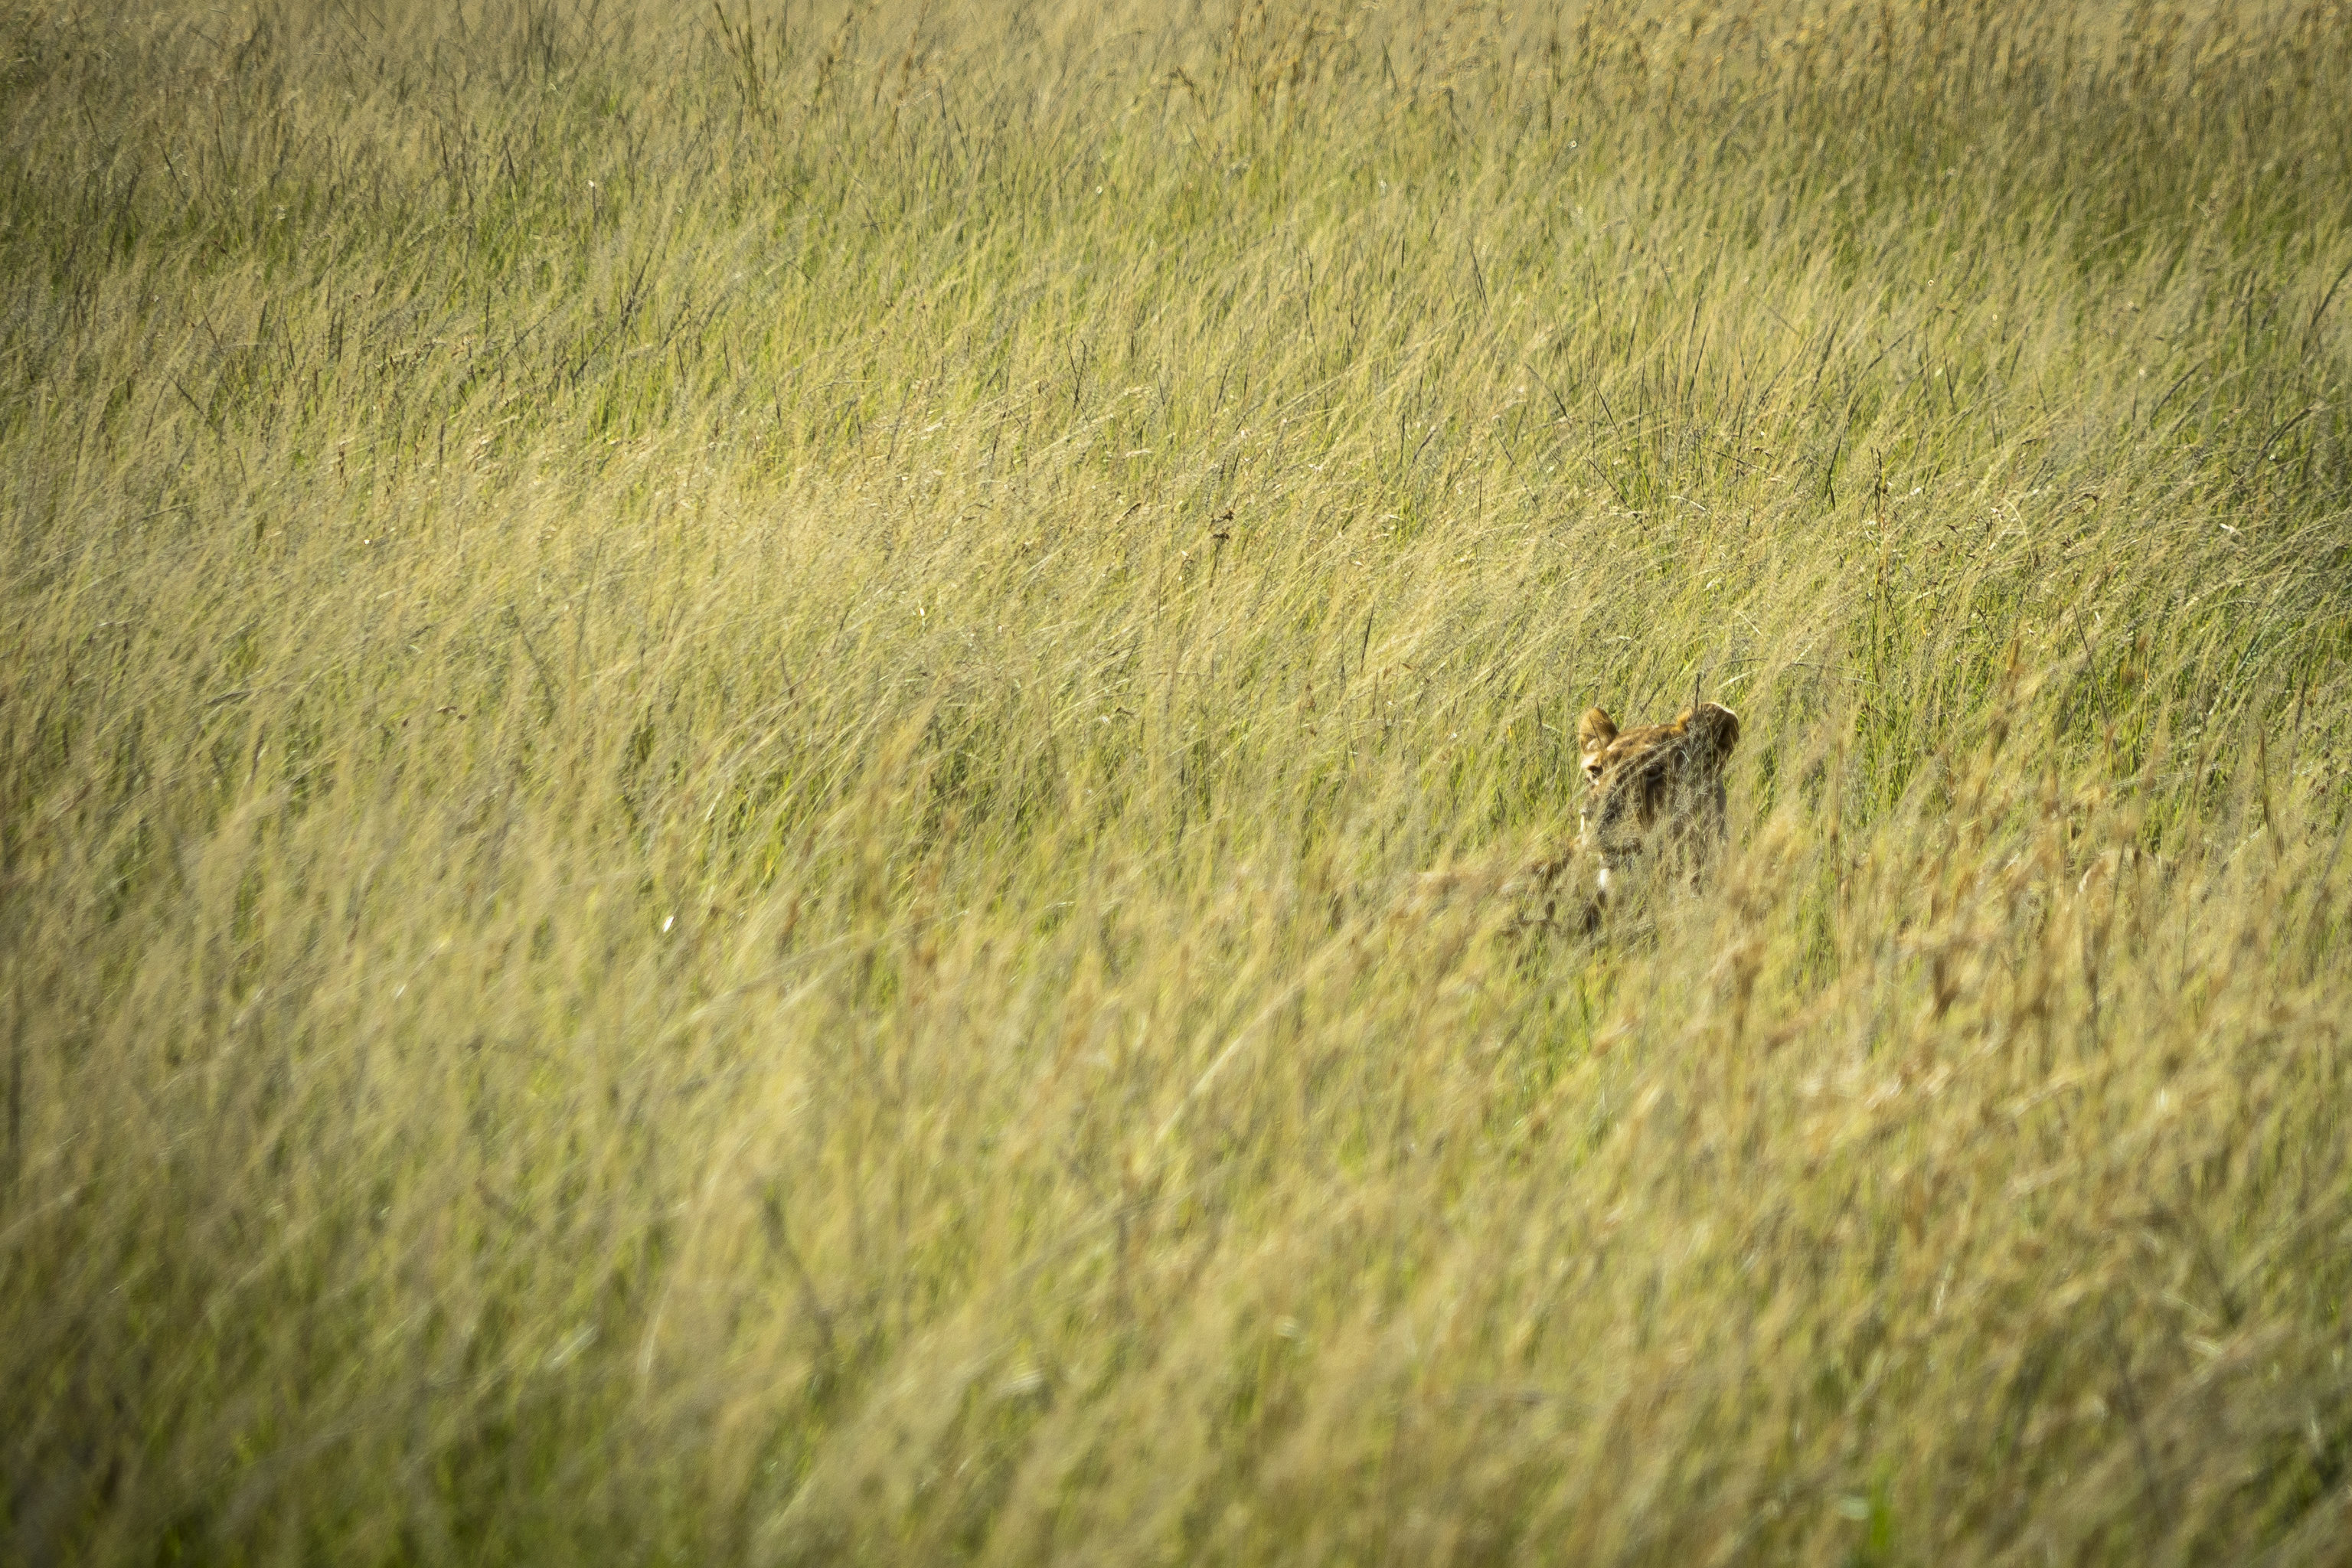 124633 download wallpaper Animals, Lion, Predator, Grass, Thickets, Thicket, Wildlife screensavers and pictures for free